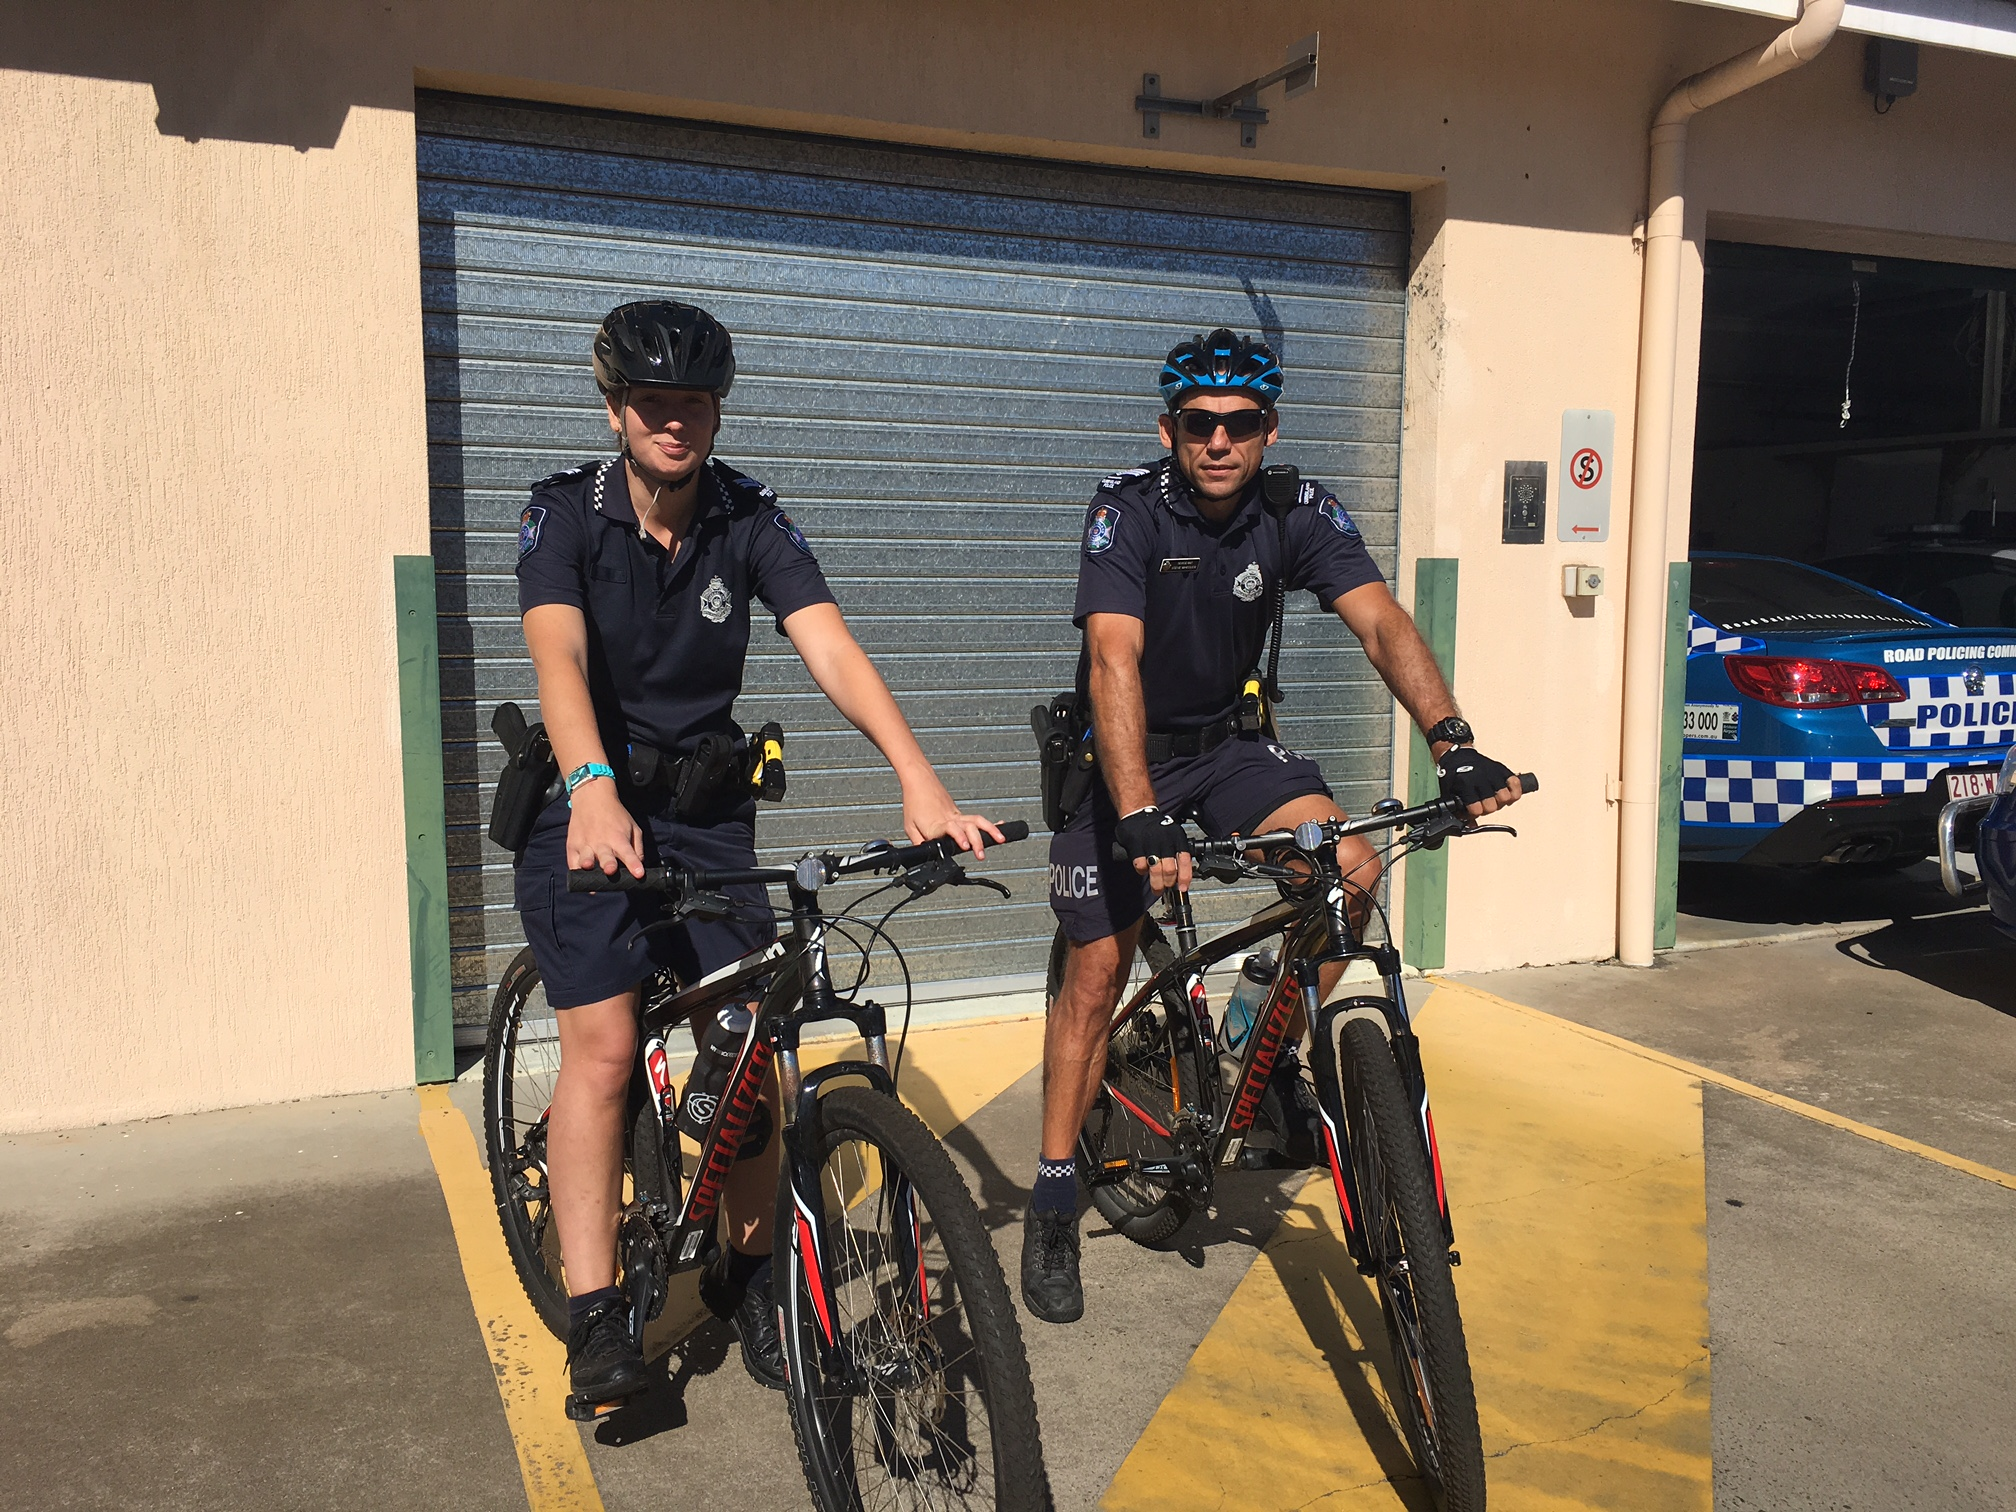 Bikes on patrol in Maryborough